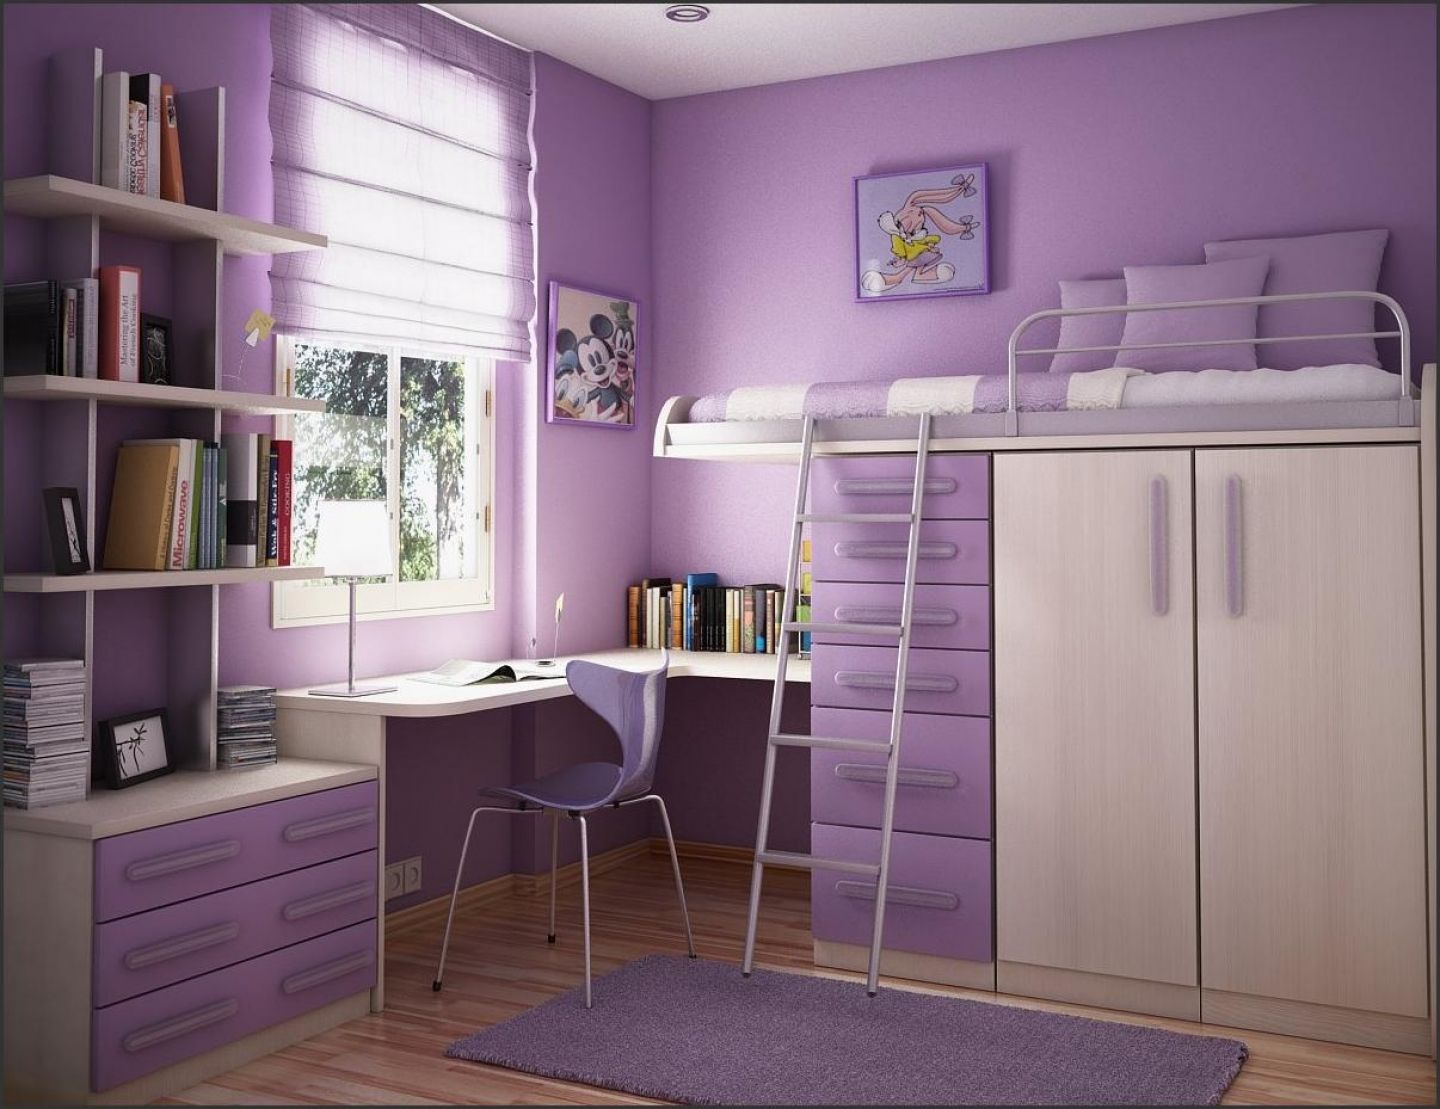 Cool Room Designs For Teenage Girls Simple Teen Girl Bedroom Decorating Ideas  0613 140358 Bedroom . Design Ideas